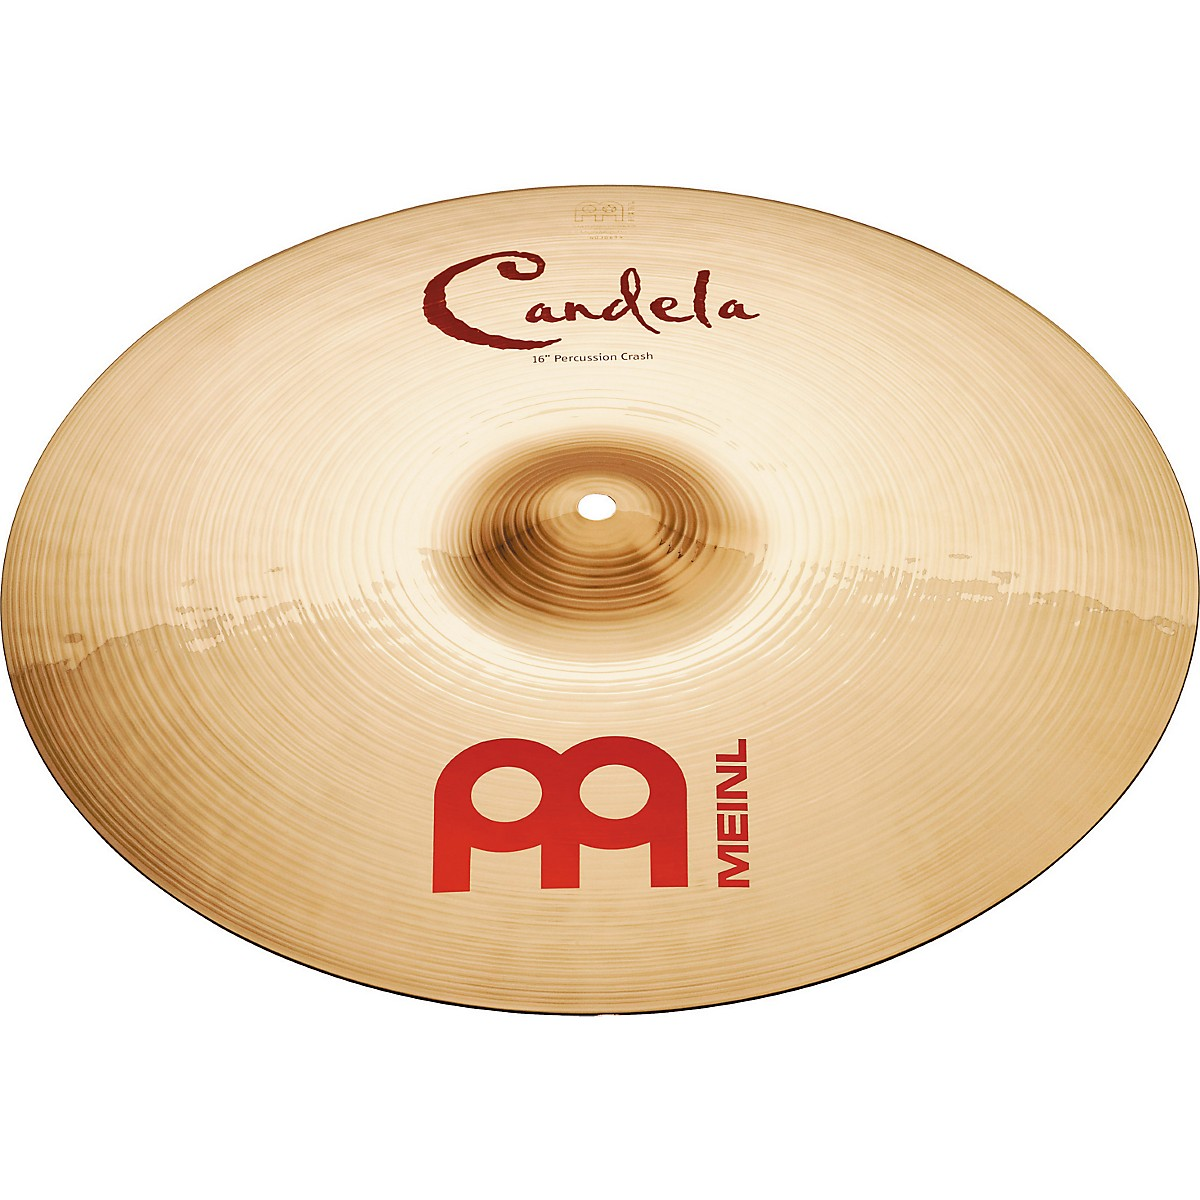 Meinl Candela Series Percussion Crash